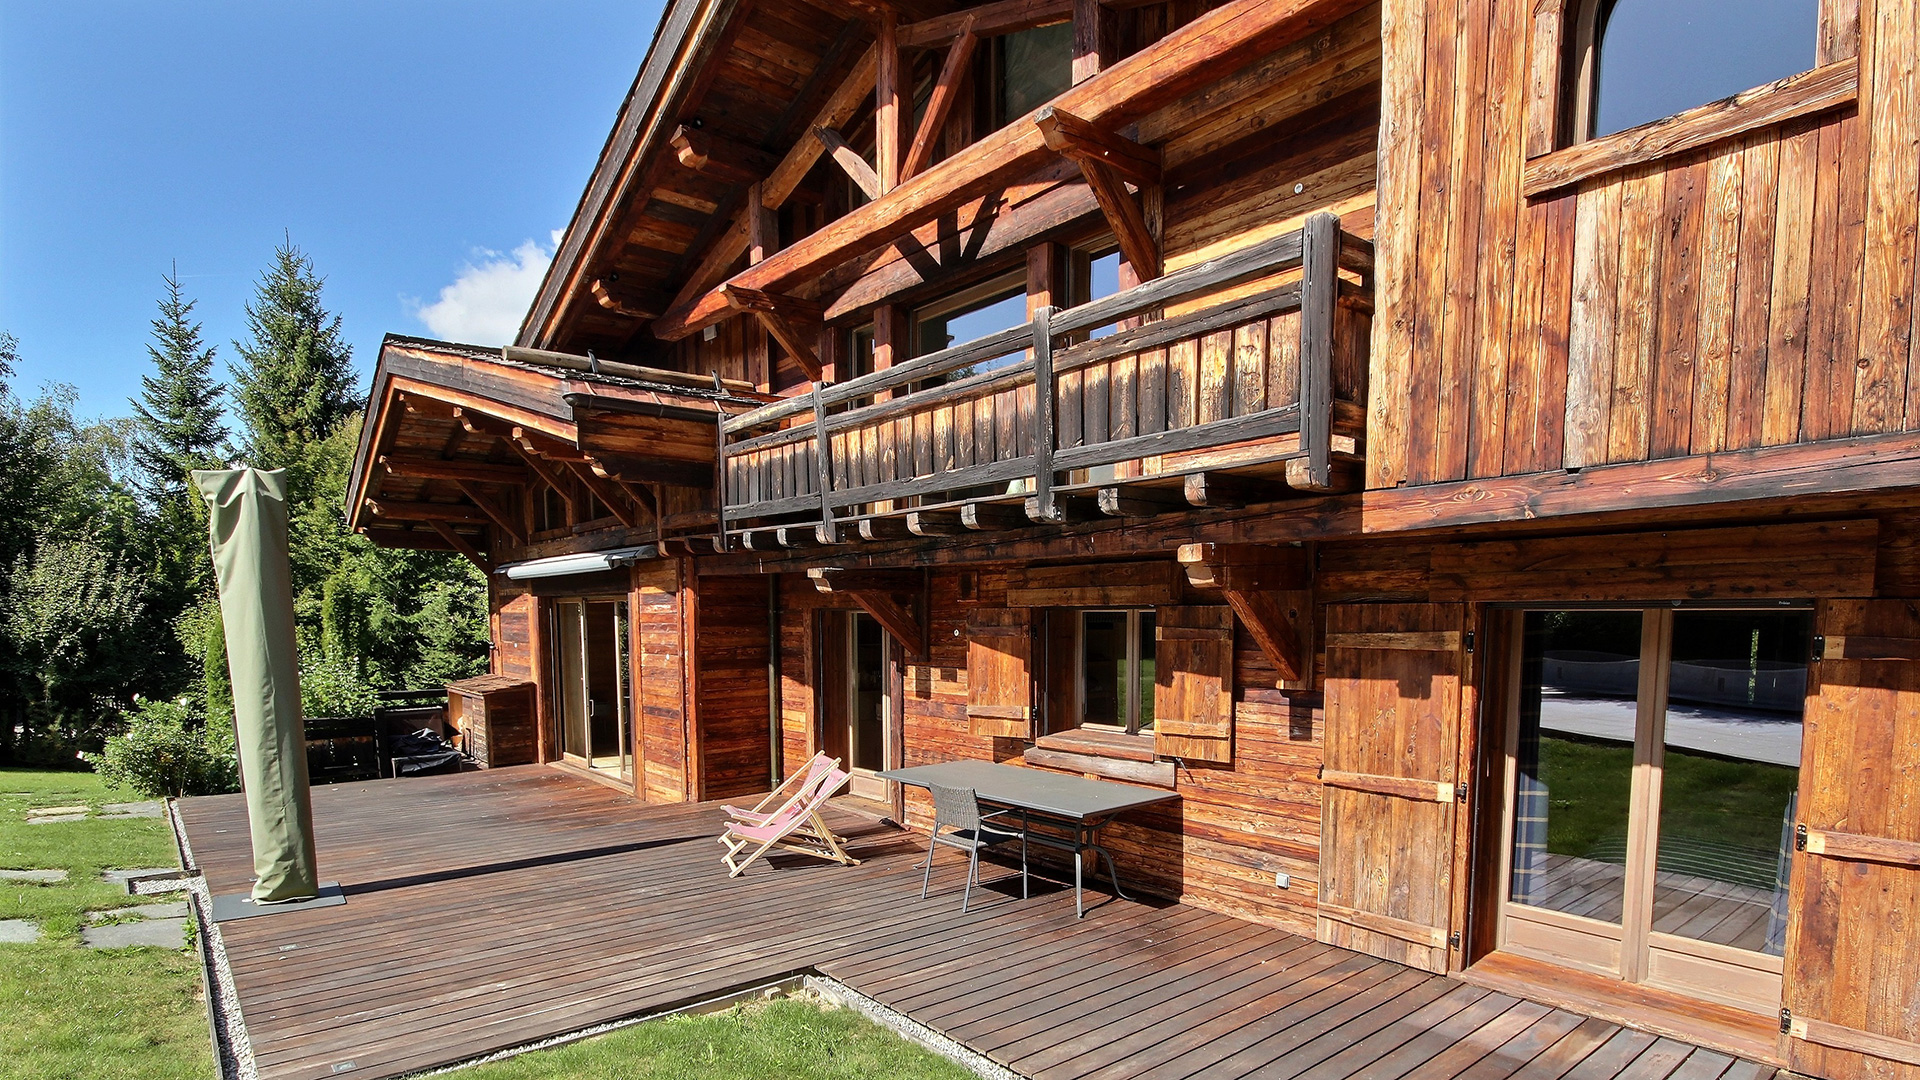 Chalet Achard Chalet, France